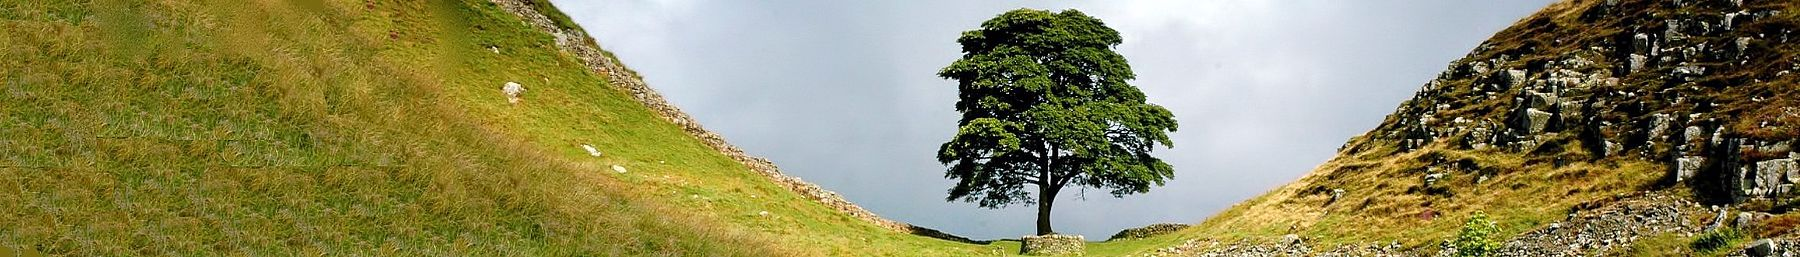 Sycamore Gap on the route of Hadrian's Wall which historically divided England and Scotland.